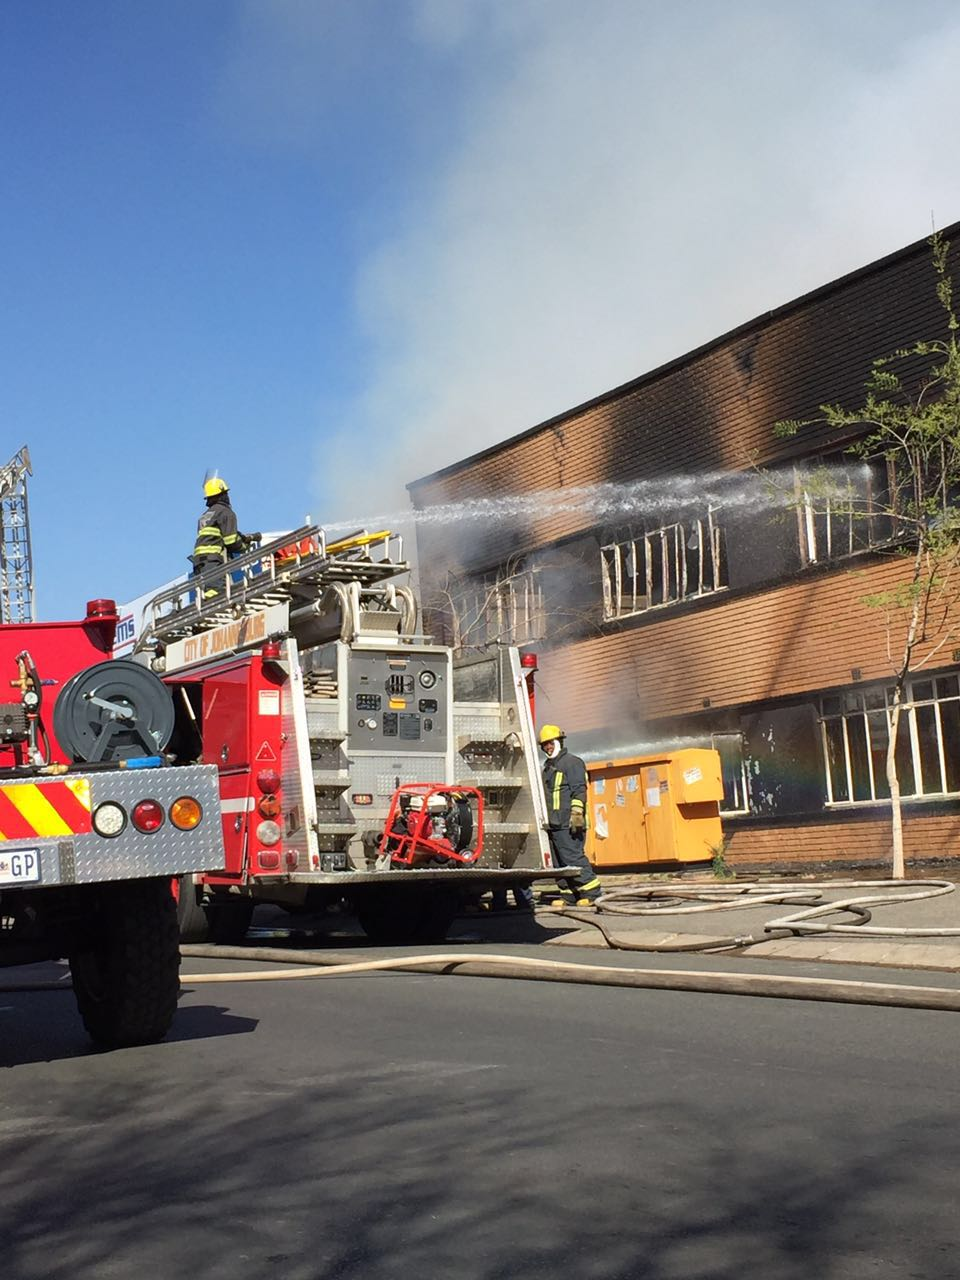 One injured when fire broke out at a furniture store in Roodepoort.